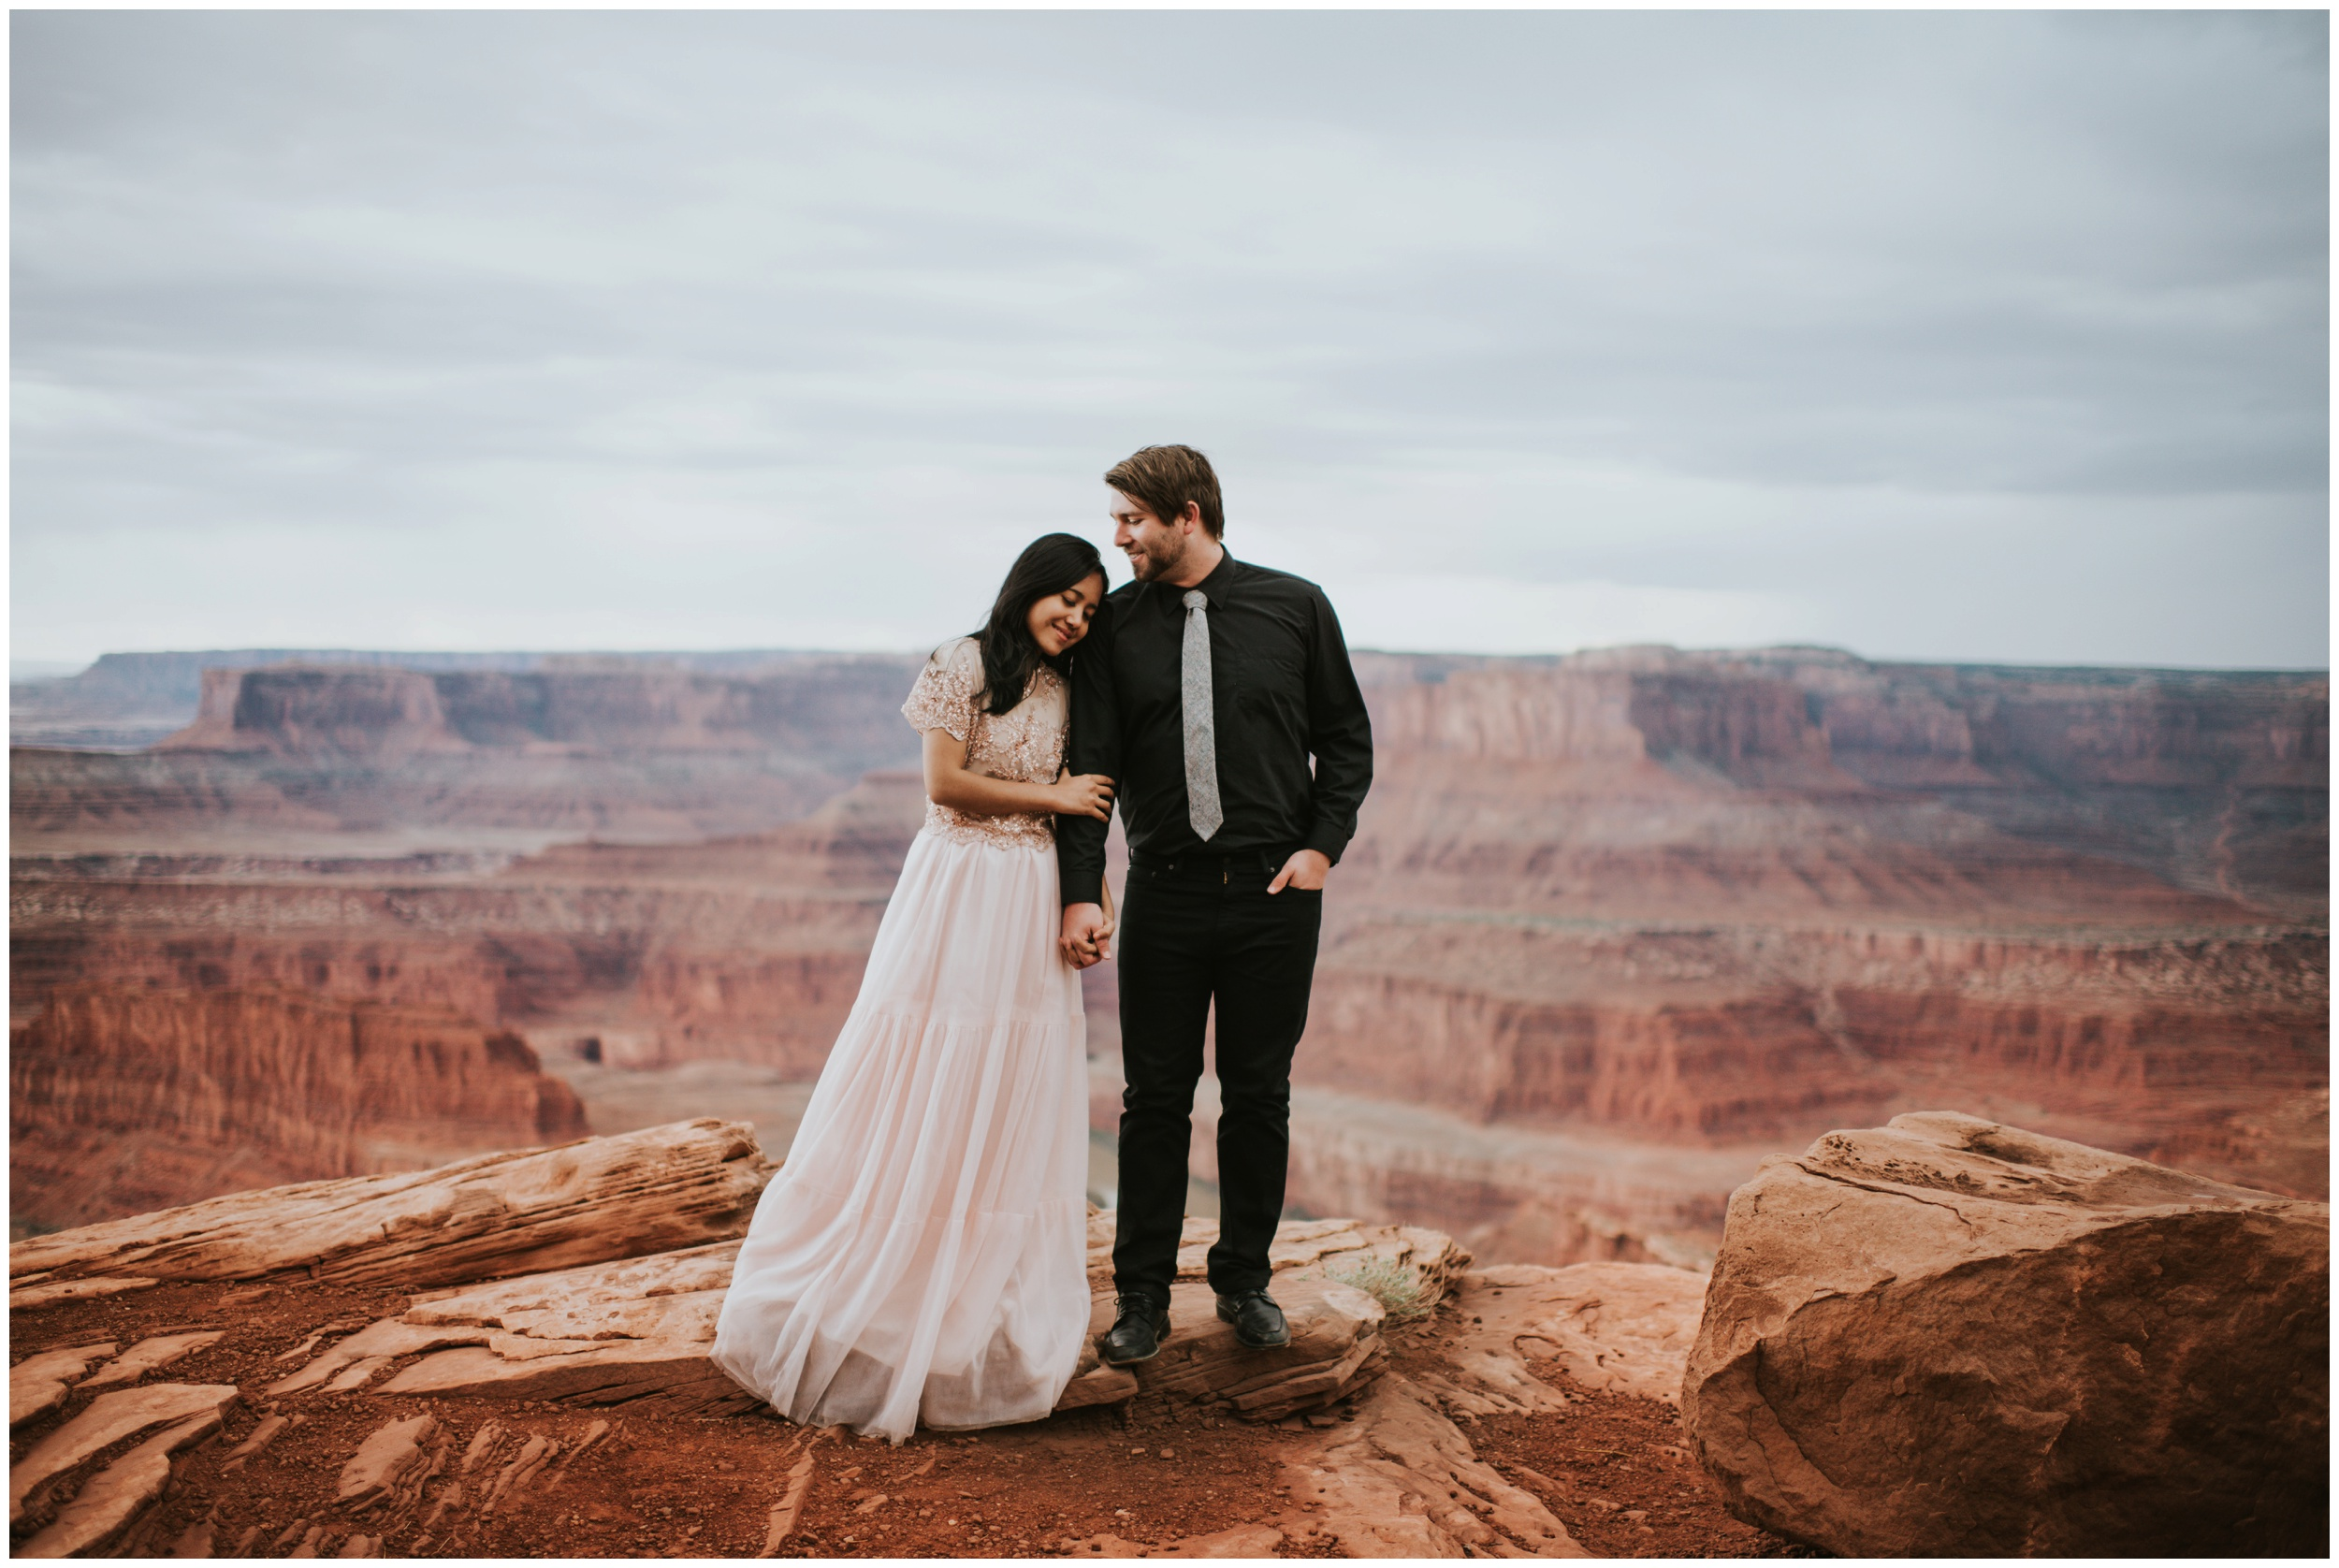 Amazing Portrait of couple at Dead Horse Point State Park | Elopement Photographer www.riversandroadsphotography.com